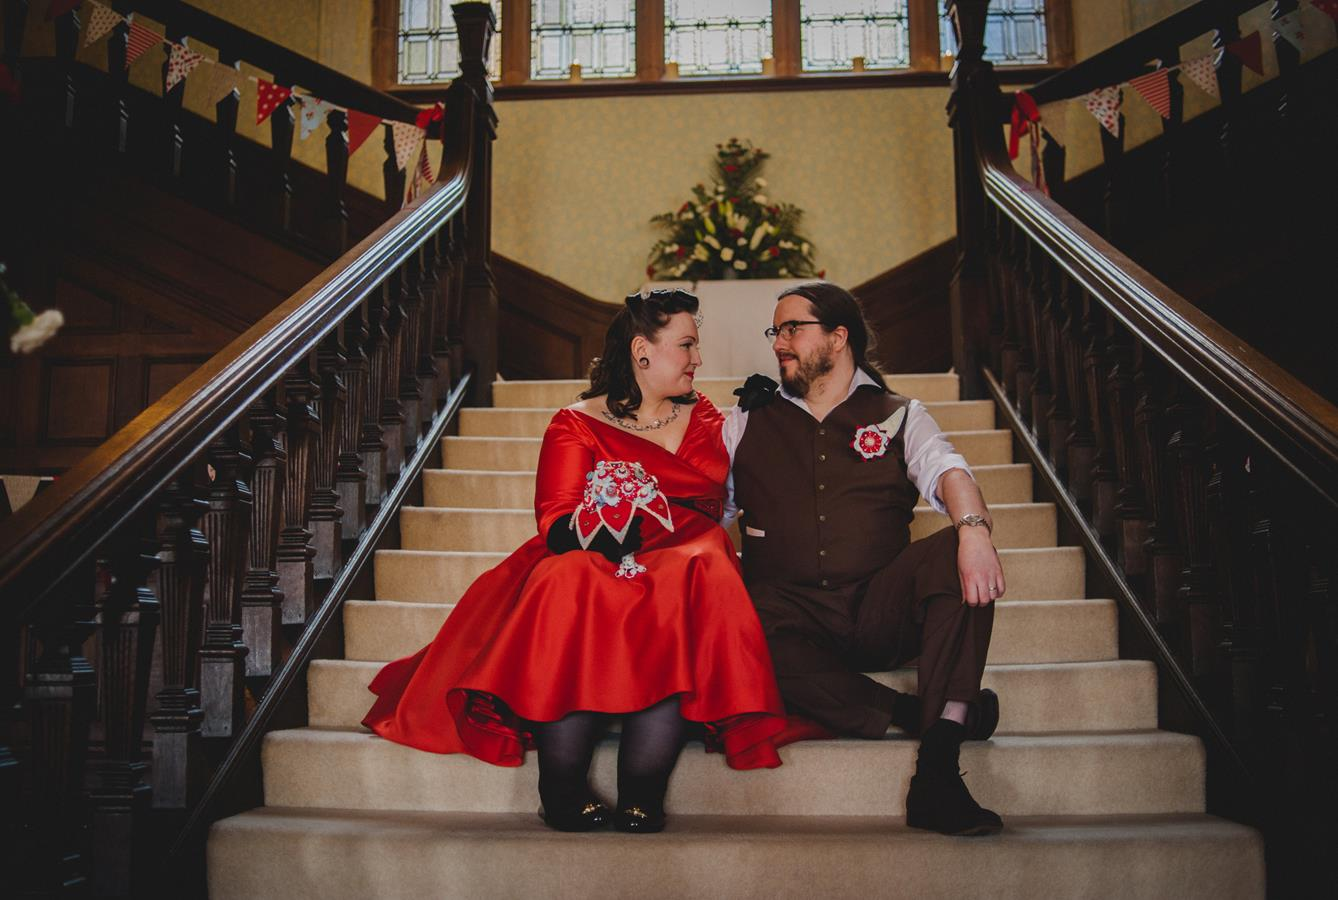 The-couture-company-alternative-bespoke-custom-made-wedding-quirky-dresses-rockabilly-1950s-tea-length-swing-vintage-lace-tattoo-tattooed-red-vegan-dress-bride-PhotoByToastofLeeds (15) (Copy)